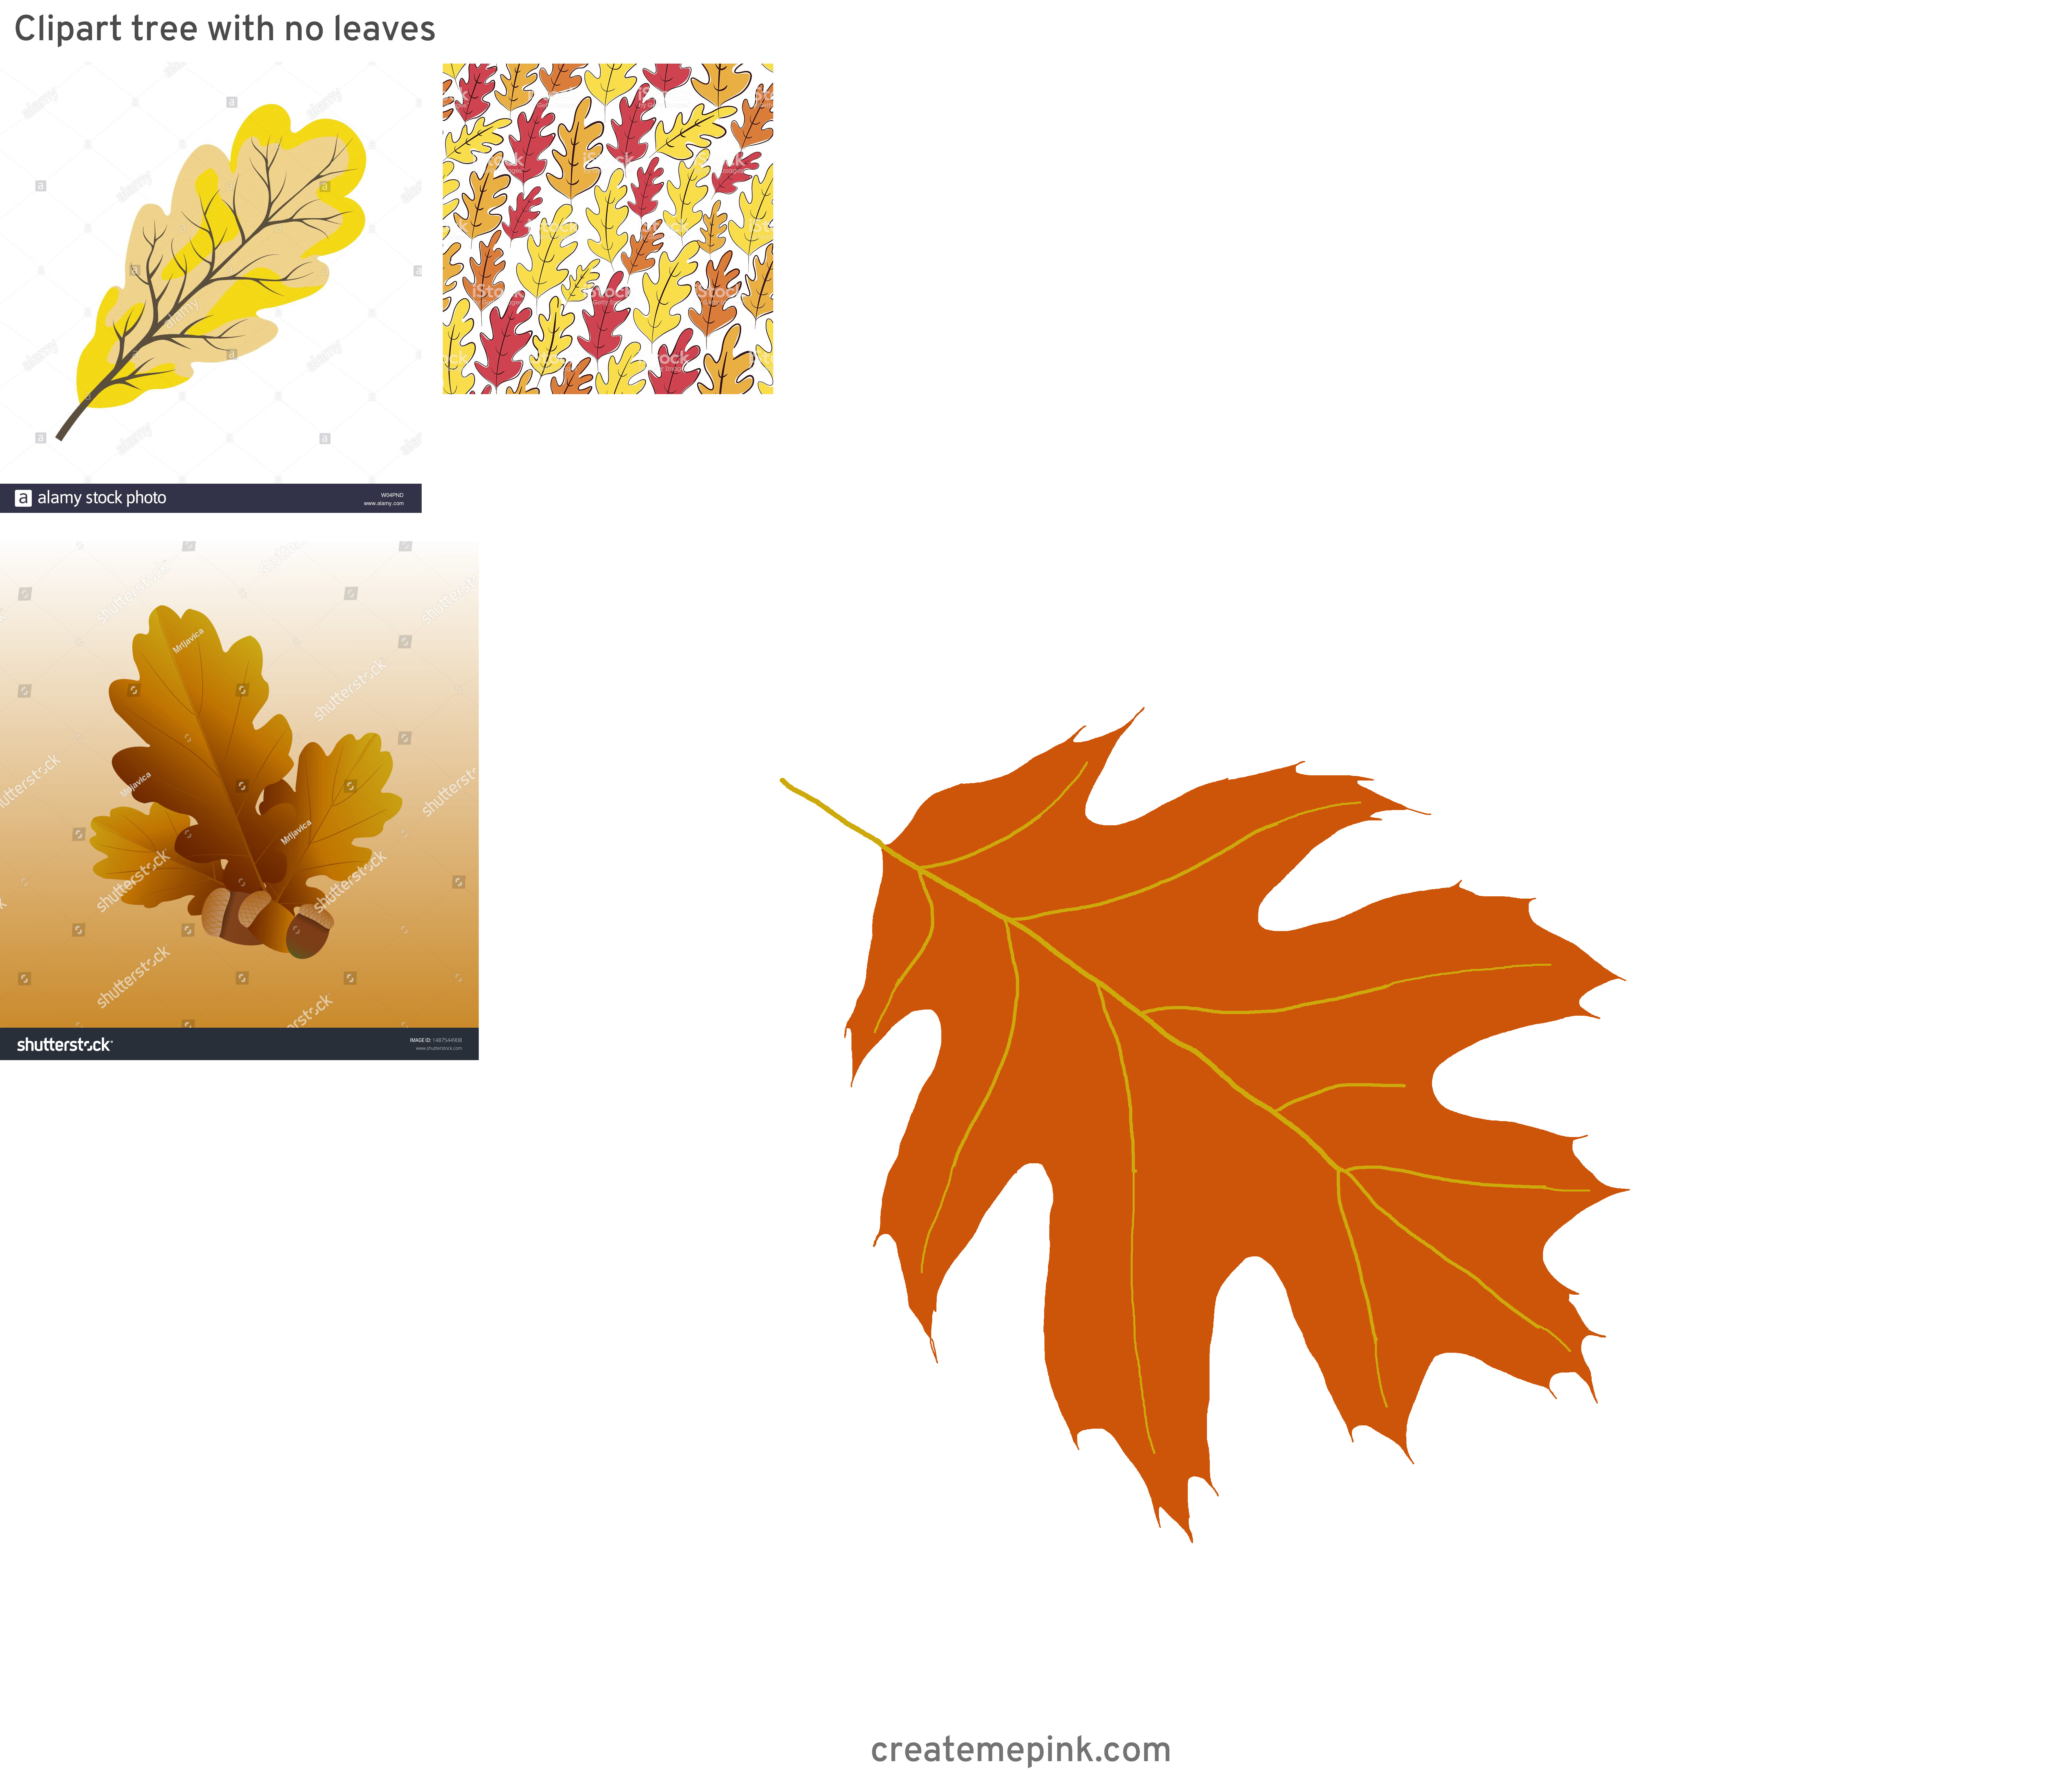 Falling Oak Leaves Vector: Clipart Tree With No Leaves